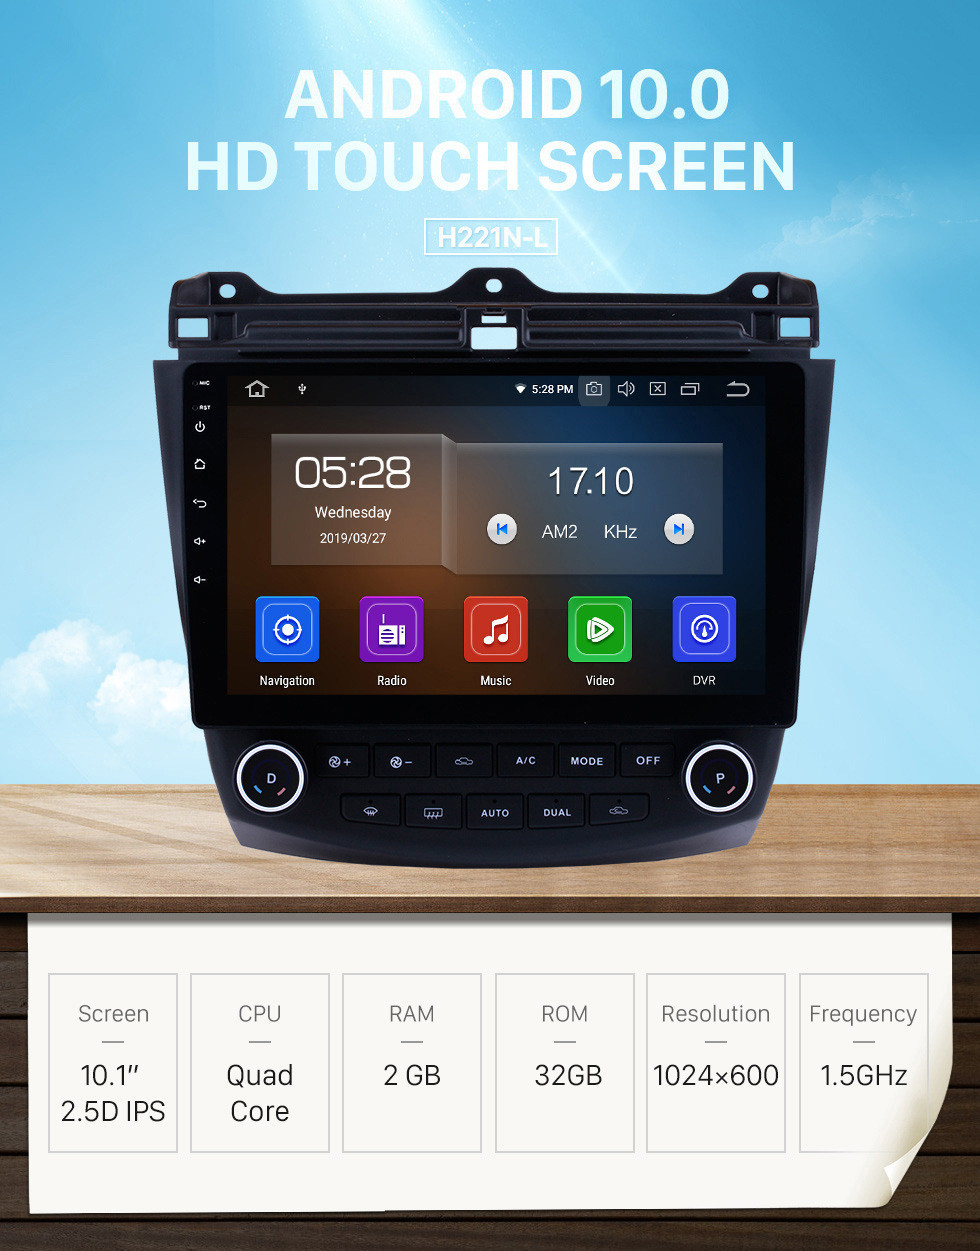 Seicane 10.1 inch HD Touchscreen Android 10.0 2003 2004 2005 2006 2007 Honda Accord 7  Radio GPS Navigation Bluetooth USB WIFI 1080P Support OBD2 DVR Rearview